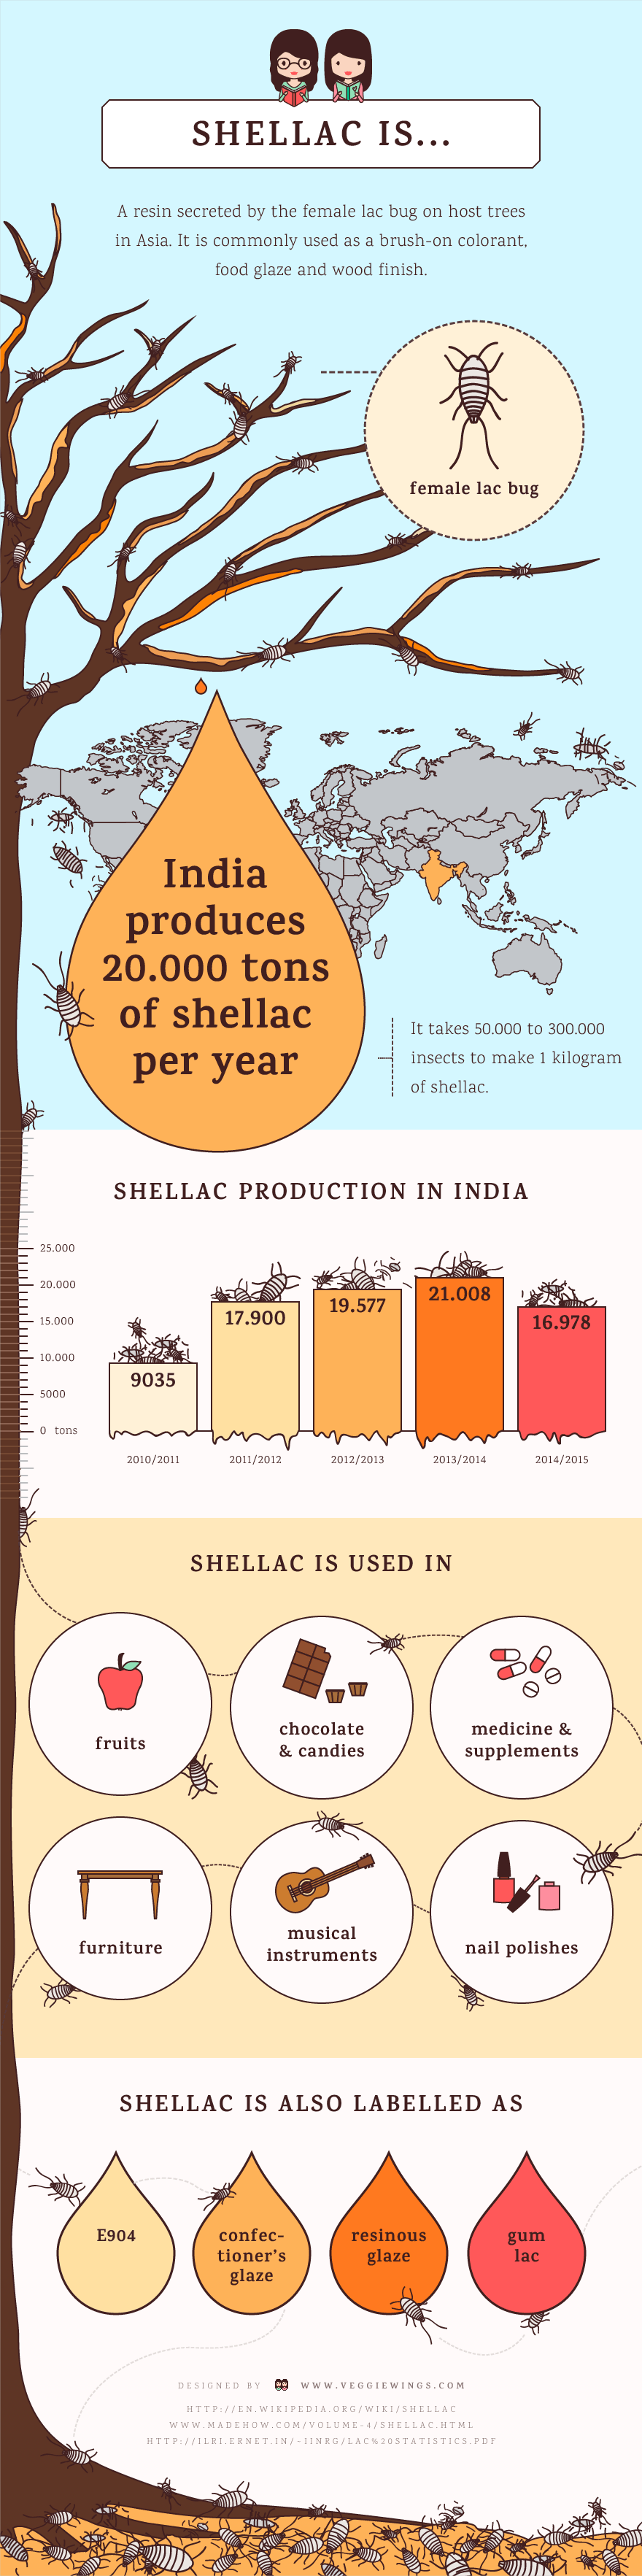 shellac infographic